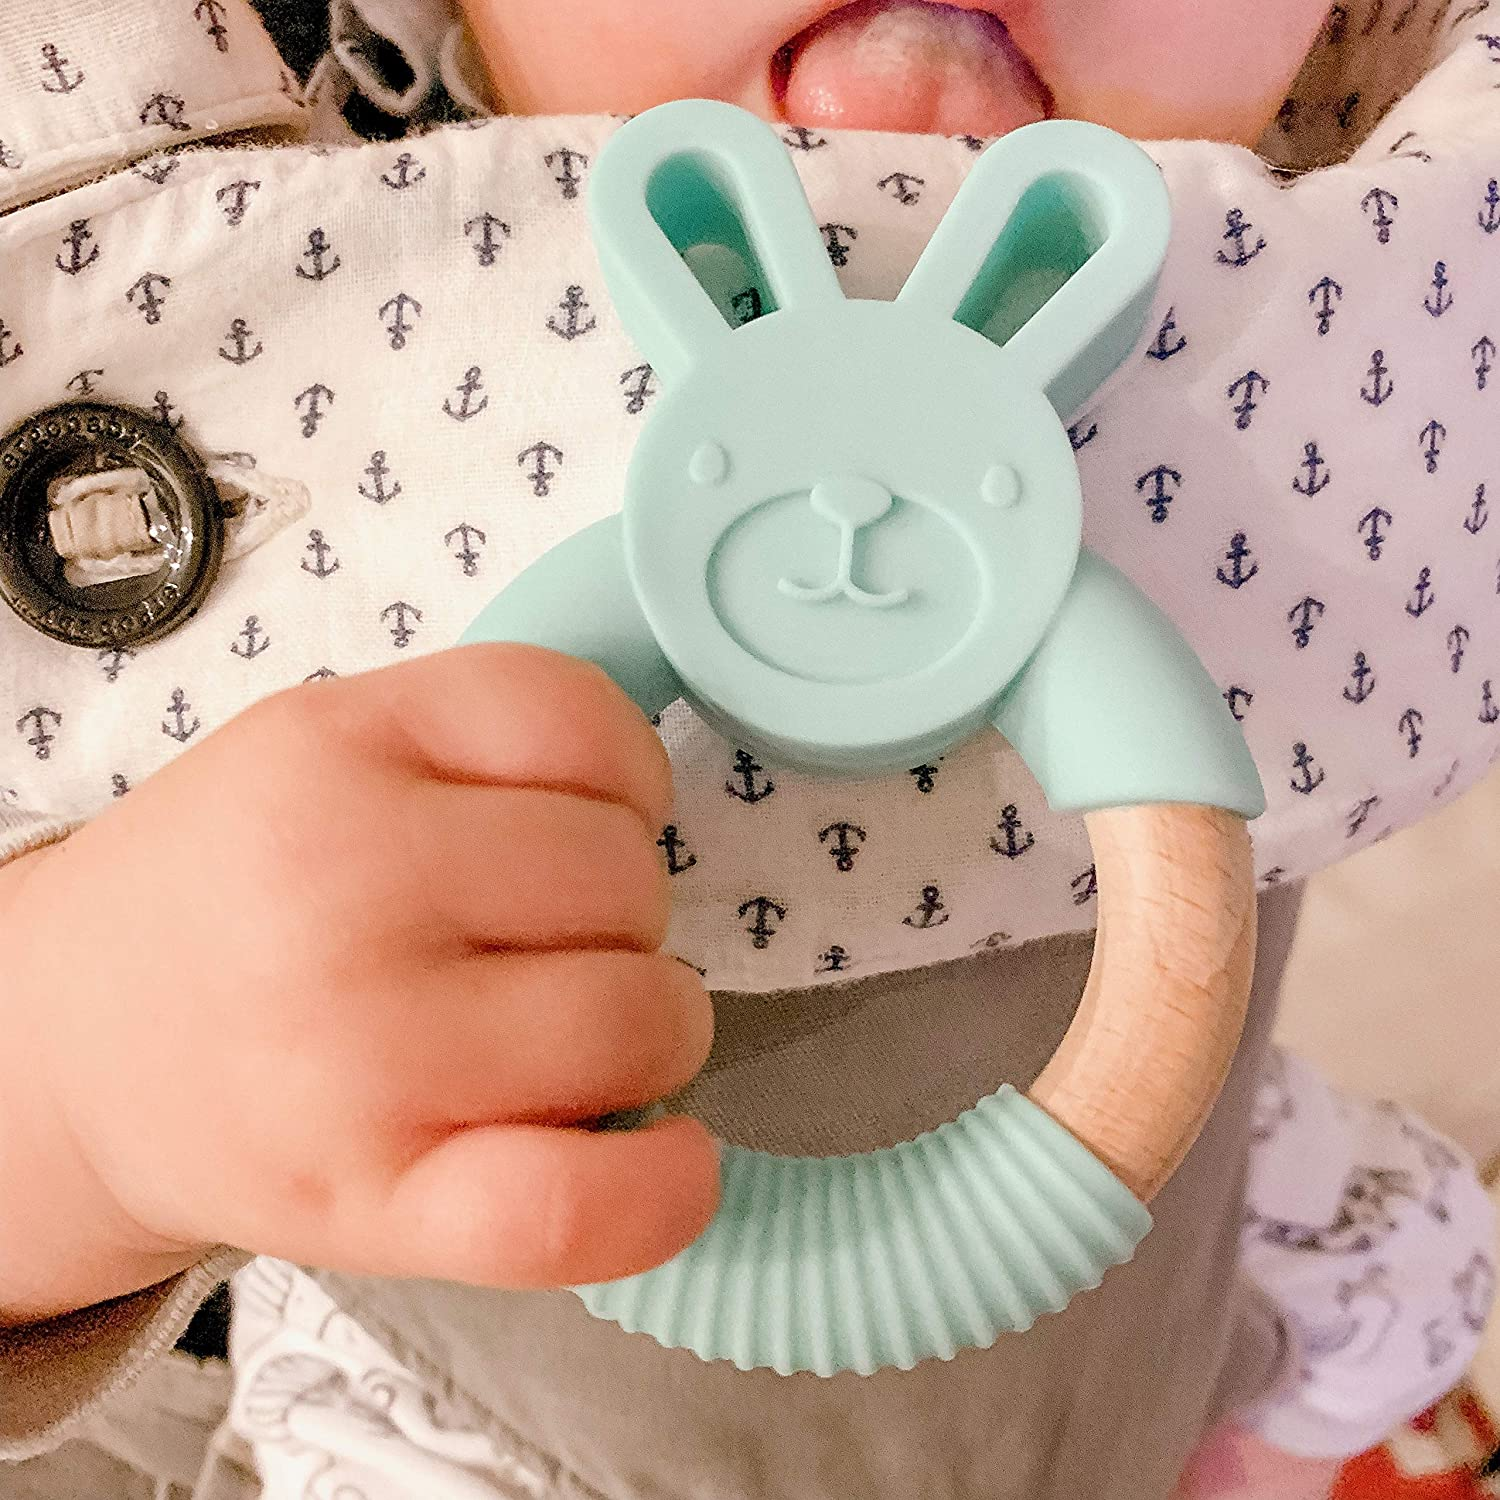 Includes Gift Bag Baby Natural Teething Relief Organic /& Eco Friendly 100/% BPA Free Bunny Fox Bear Elephant Cat Frog Lavender Cat hellobabyLA Animal Wood and Silicone Teether